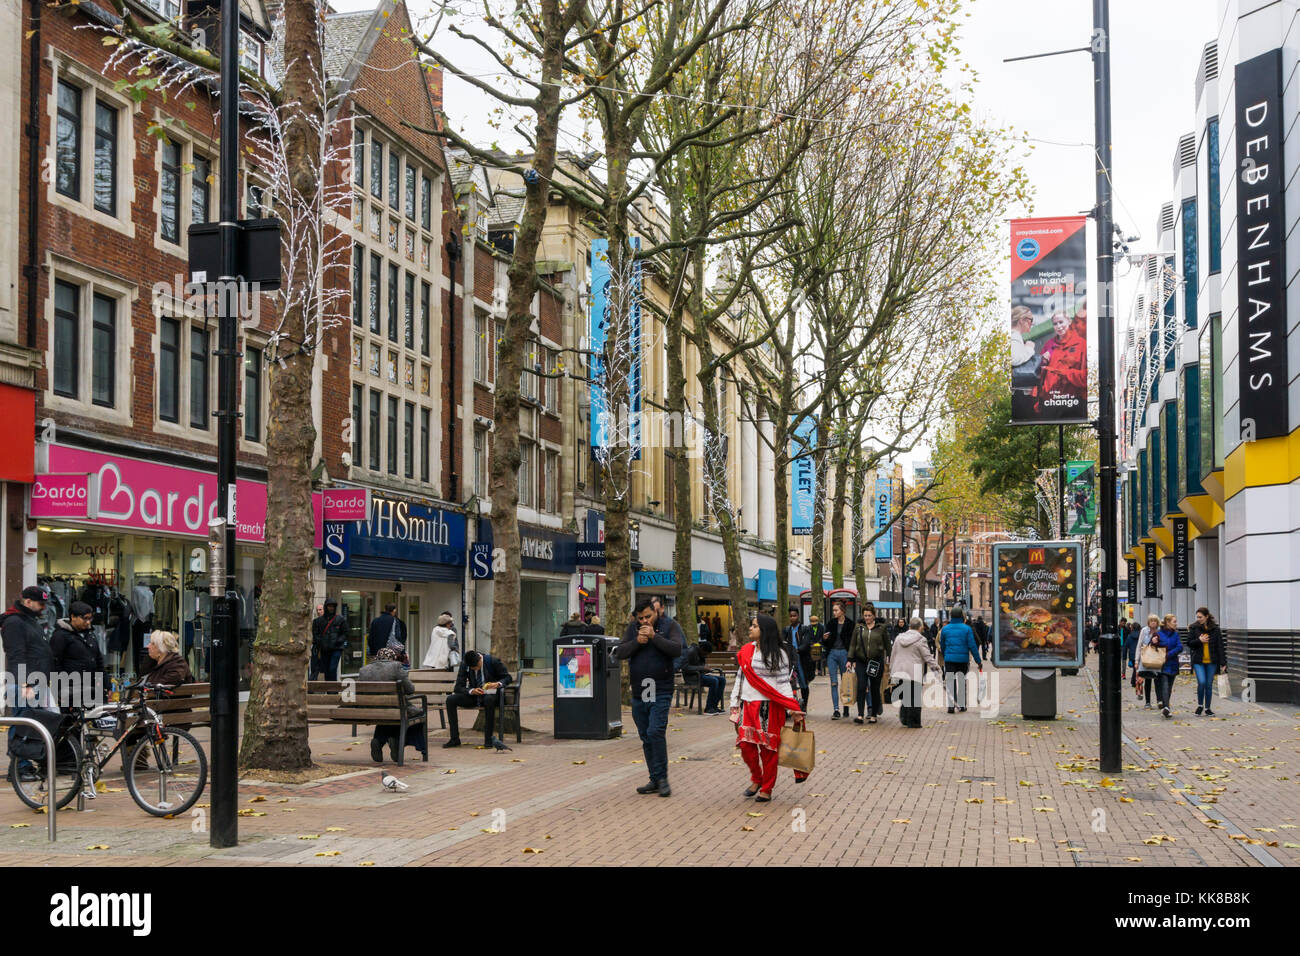 The pedestrianised shopping street of North End, Croydon. - Stock Image